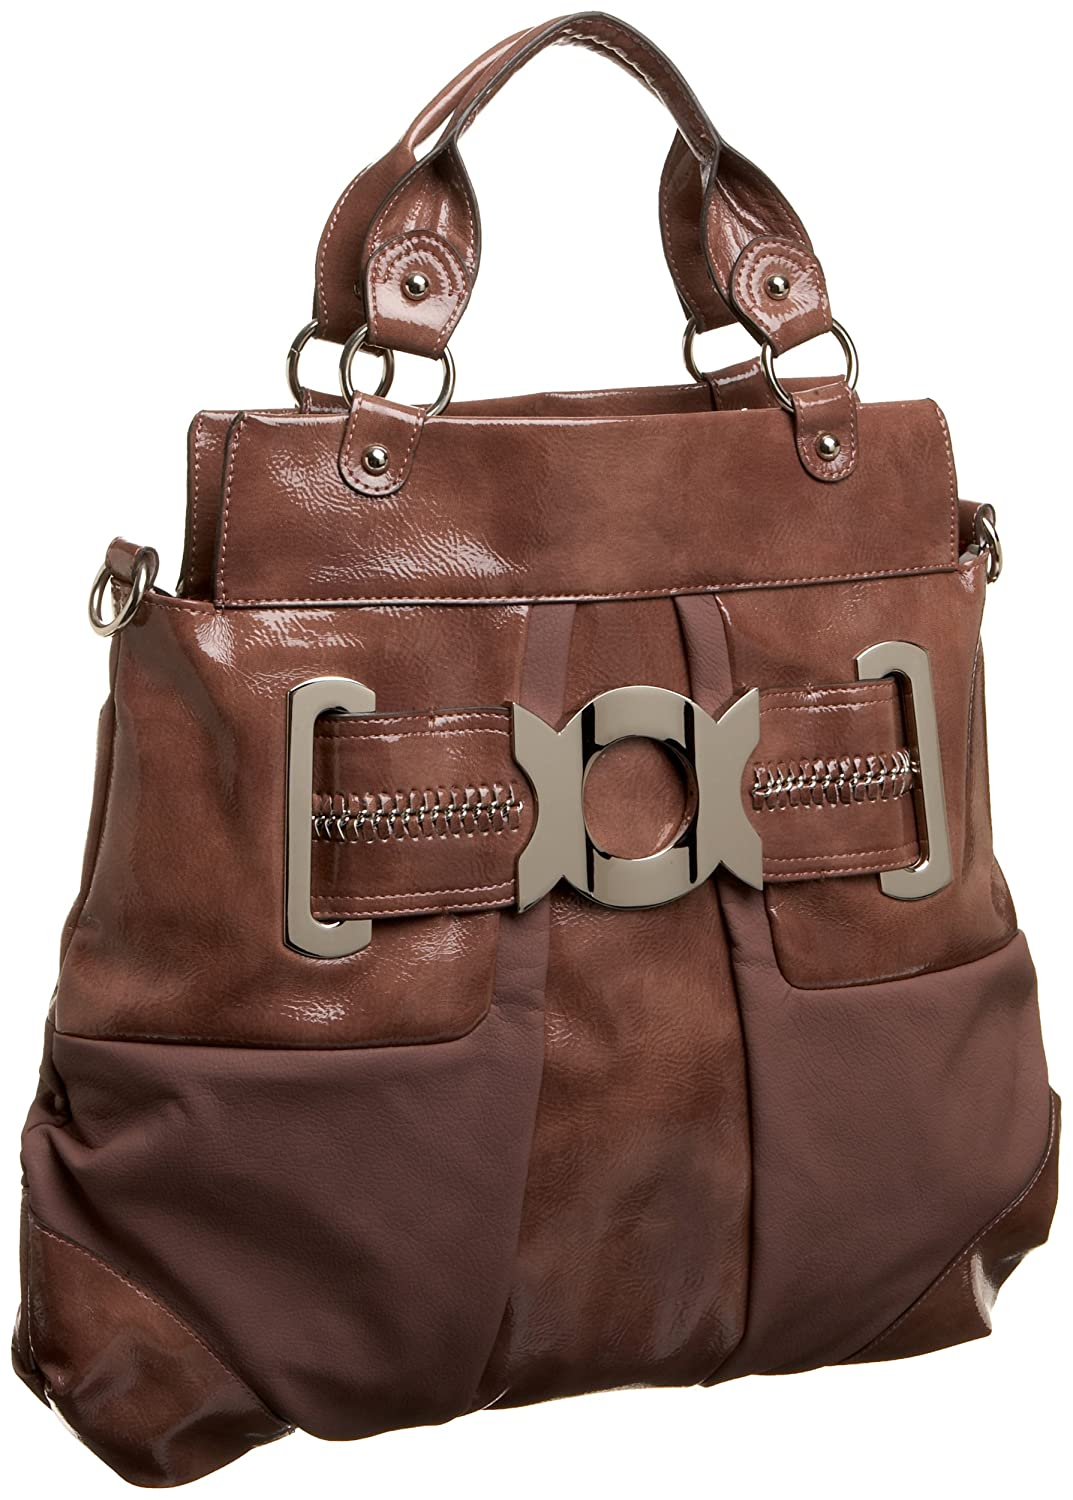 Endless.com: Rampage Koi Tote: Handbags &amp; Accessories - Free Overnight Shipping &amp; Return Shipping from endless.com